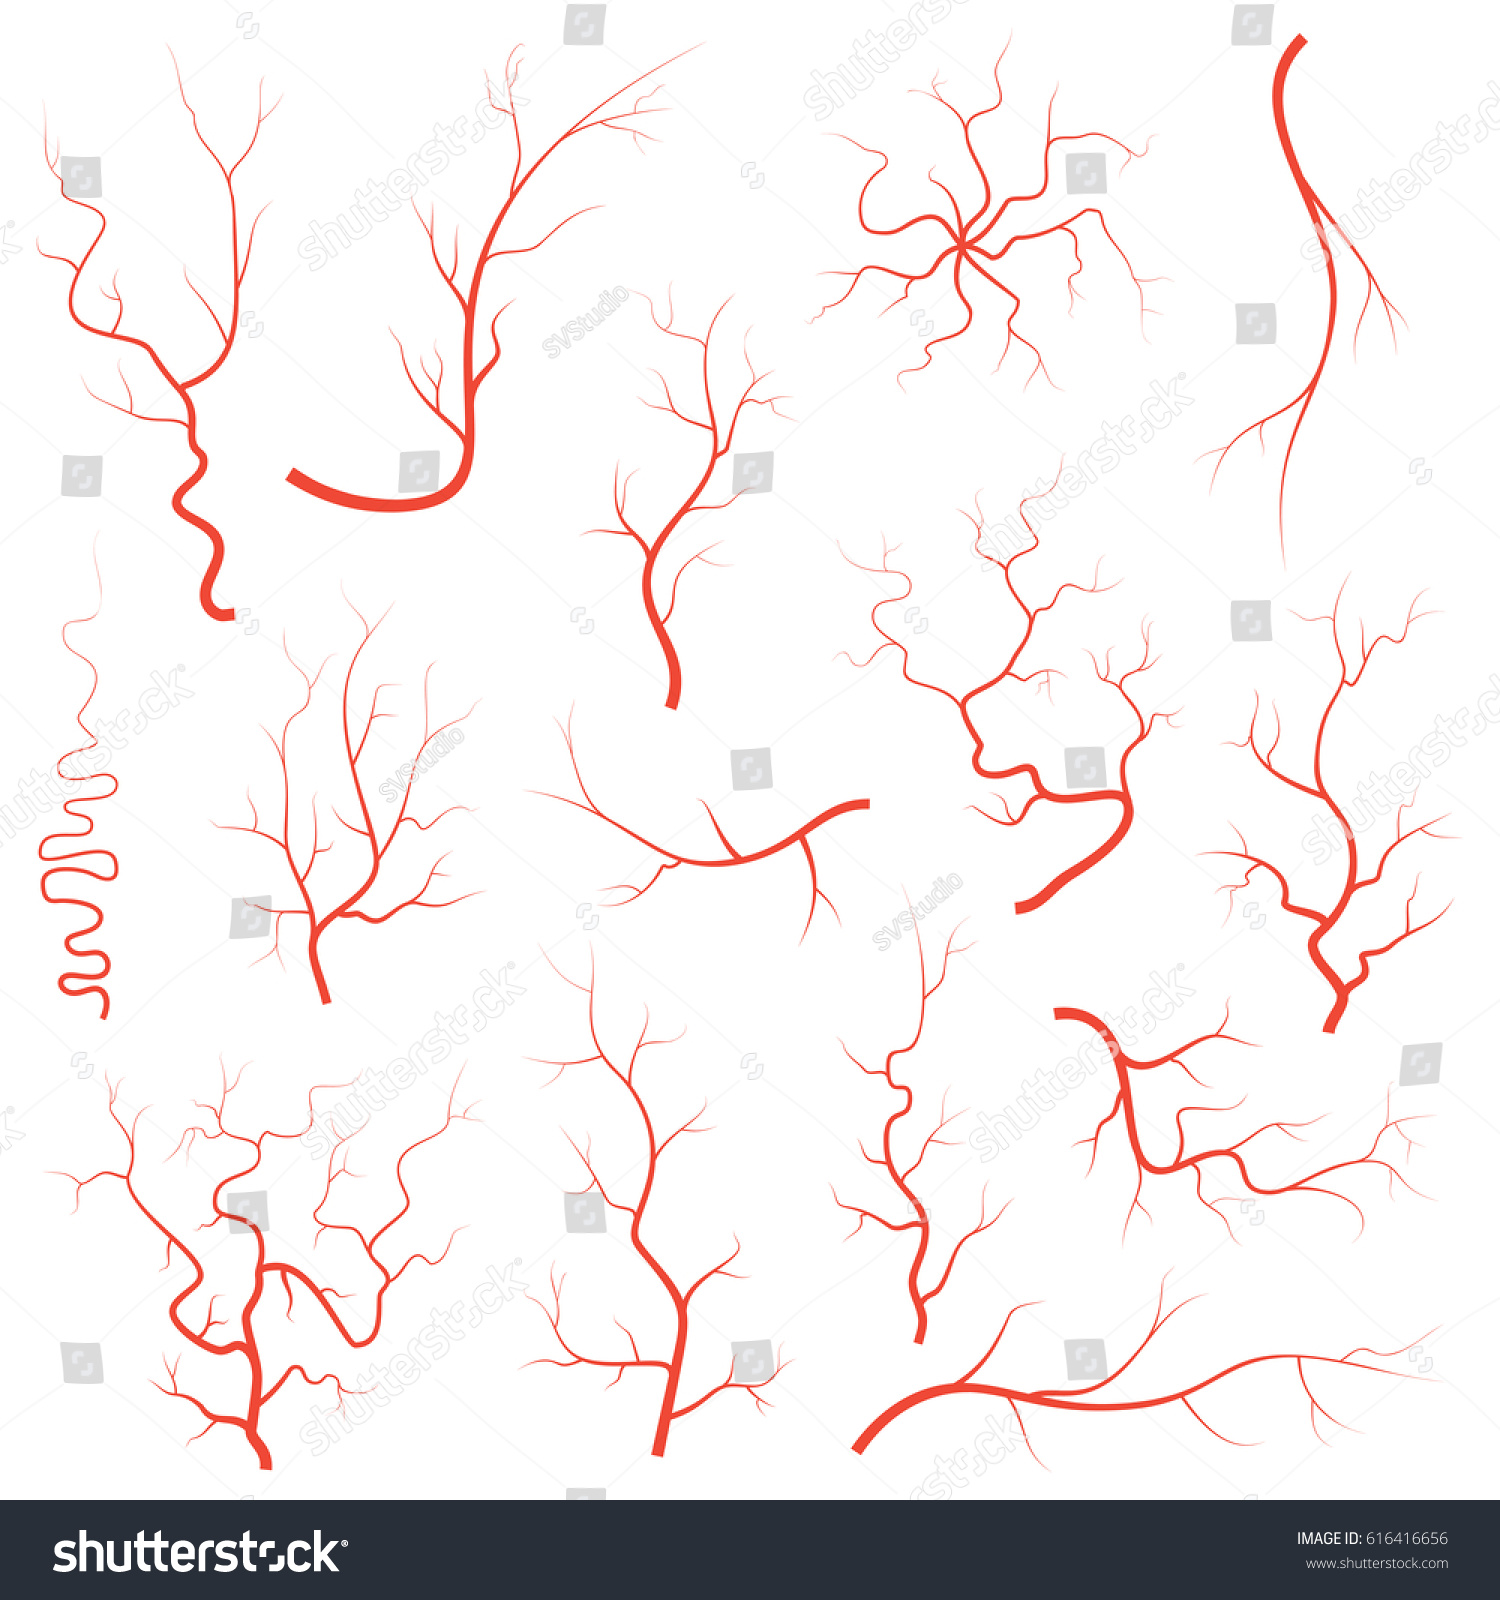 Human Red Eye Veins Set Anatomy Stock Vector Royalty Free